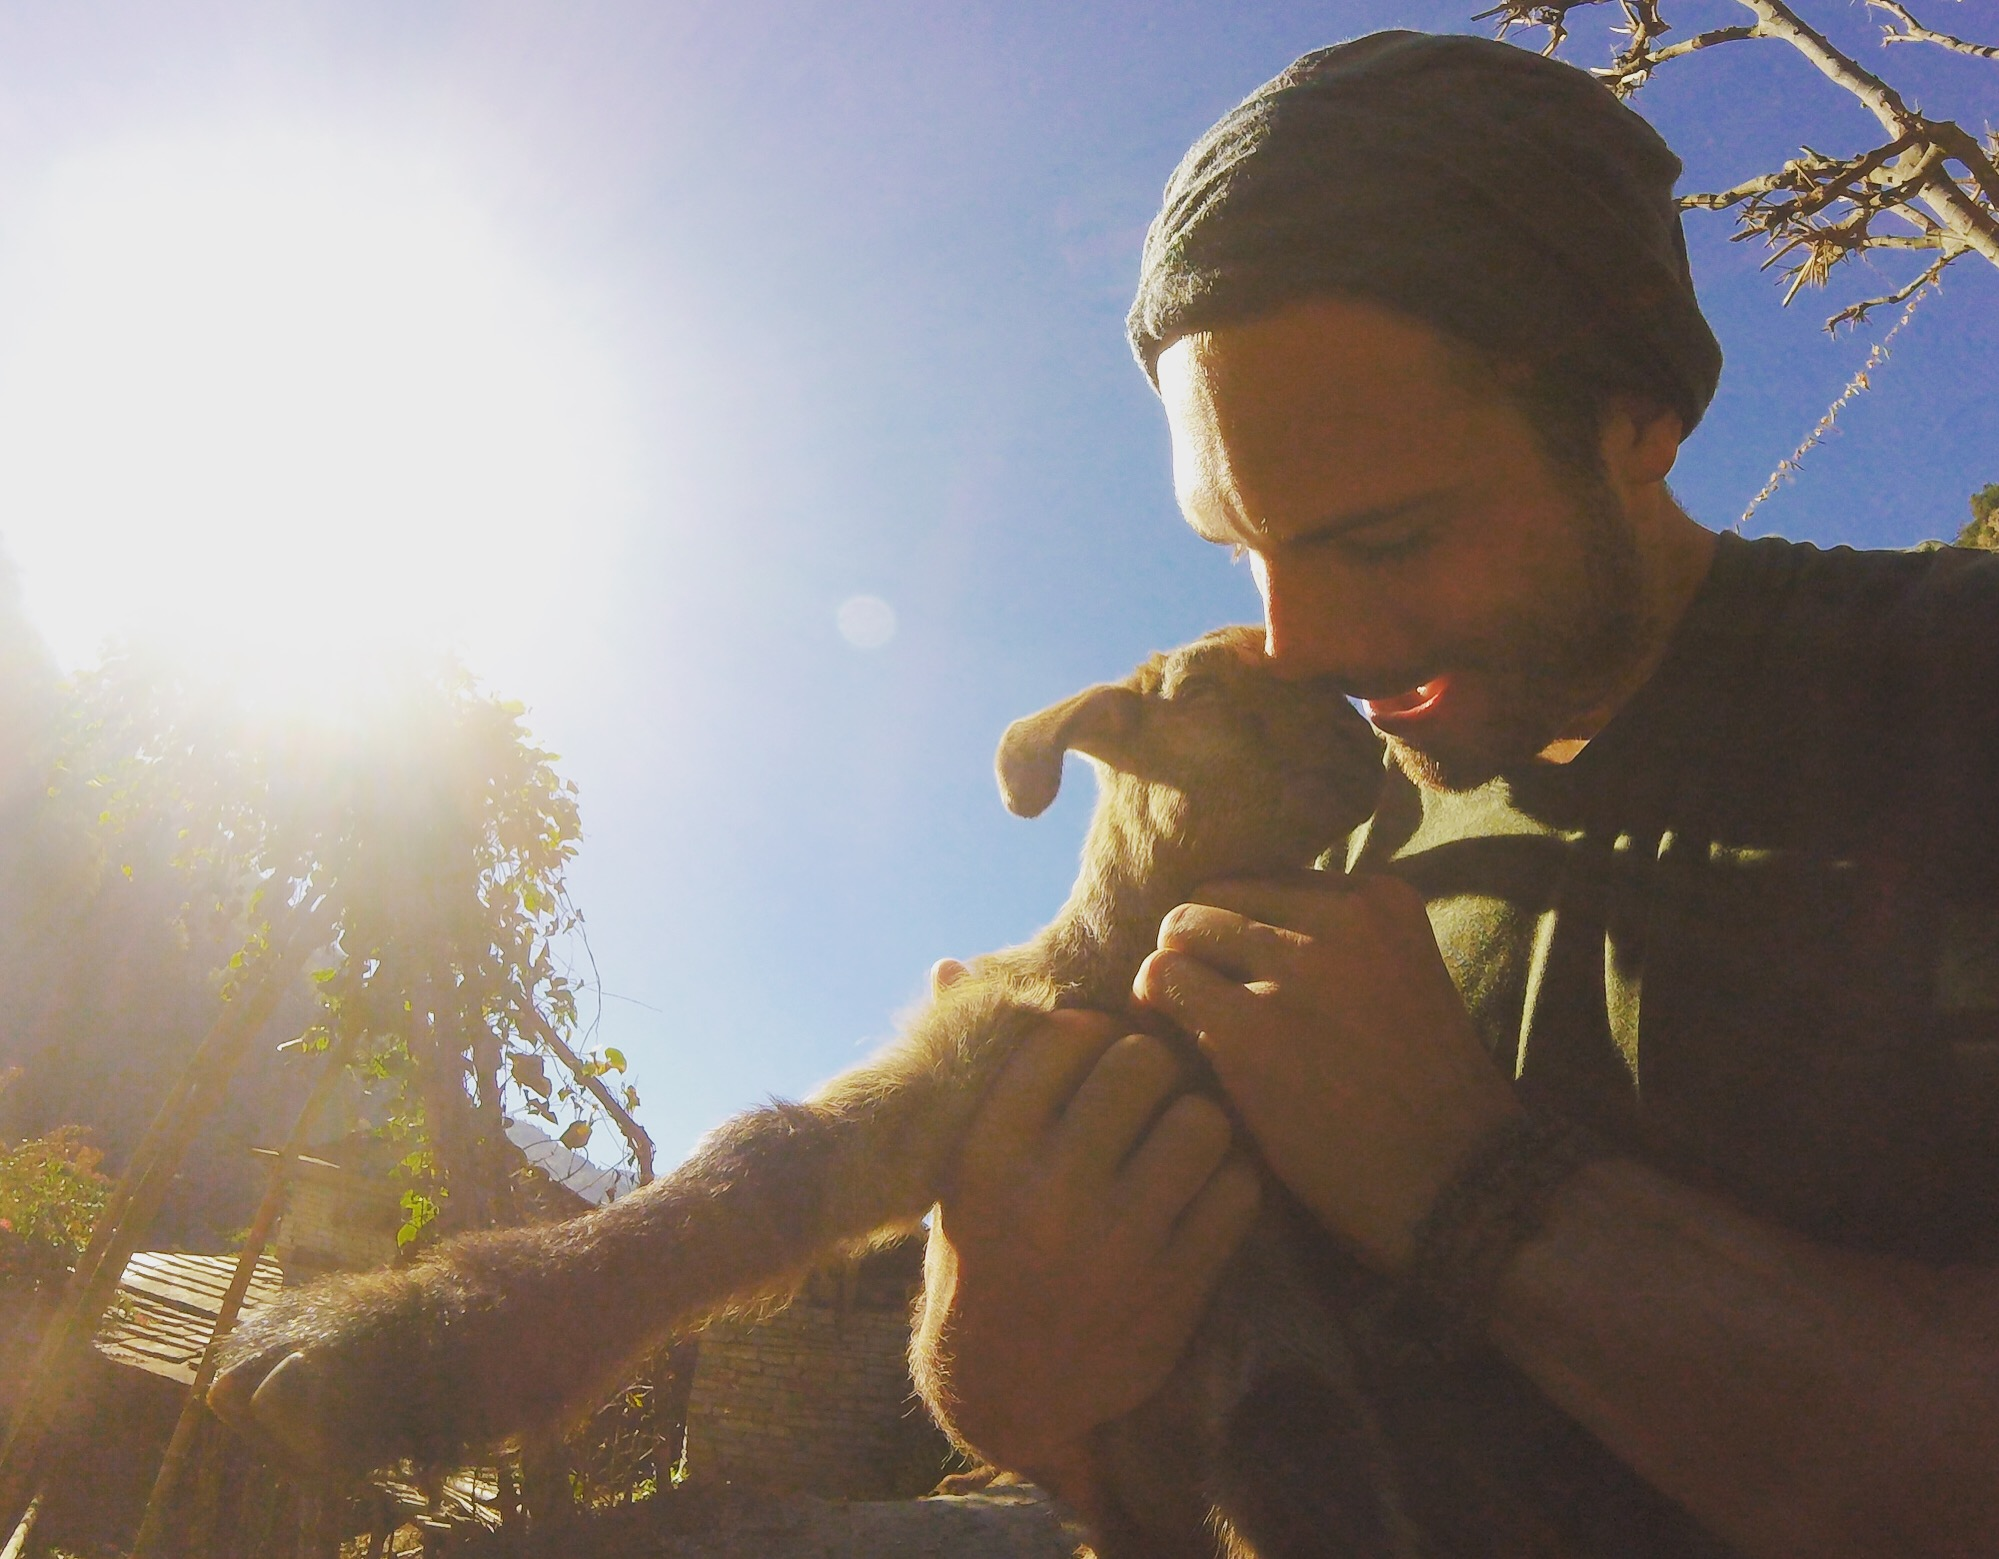 Nov 14.1, 2016   I almost stole this baby goat. Walking into Ghorepani we saw an entire flock of them being tamed by a small boy. We ran down the rock steps like little kids towards him—Namaste! Then I pantomimed picking one up. The boy nodded.